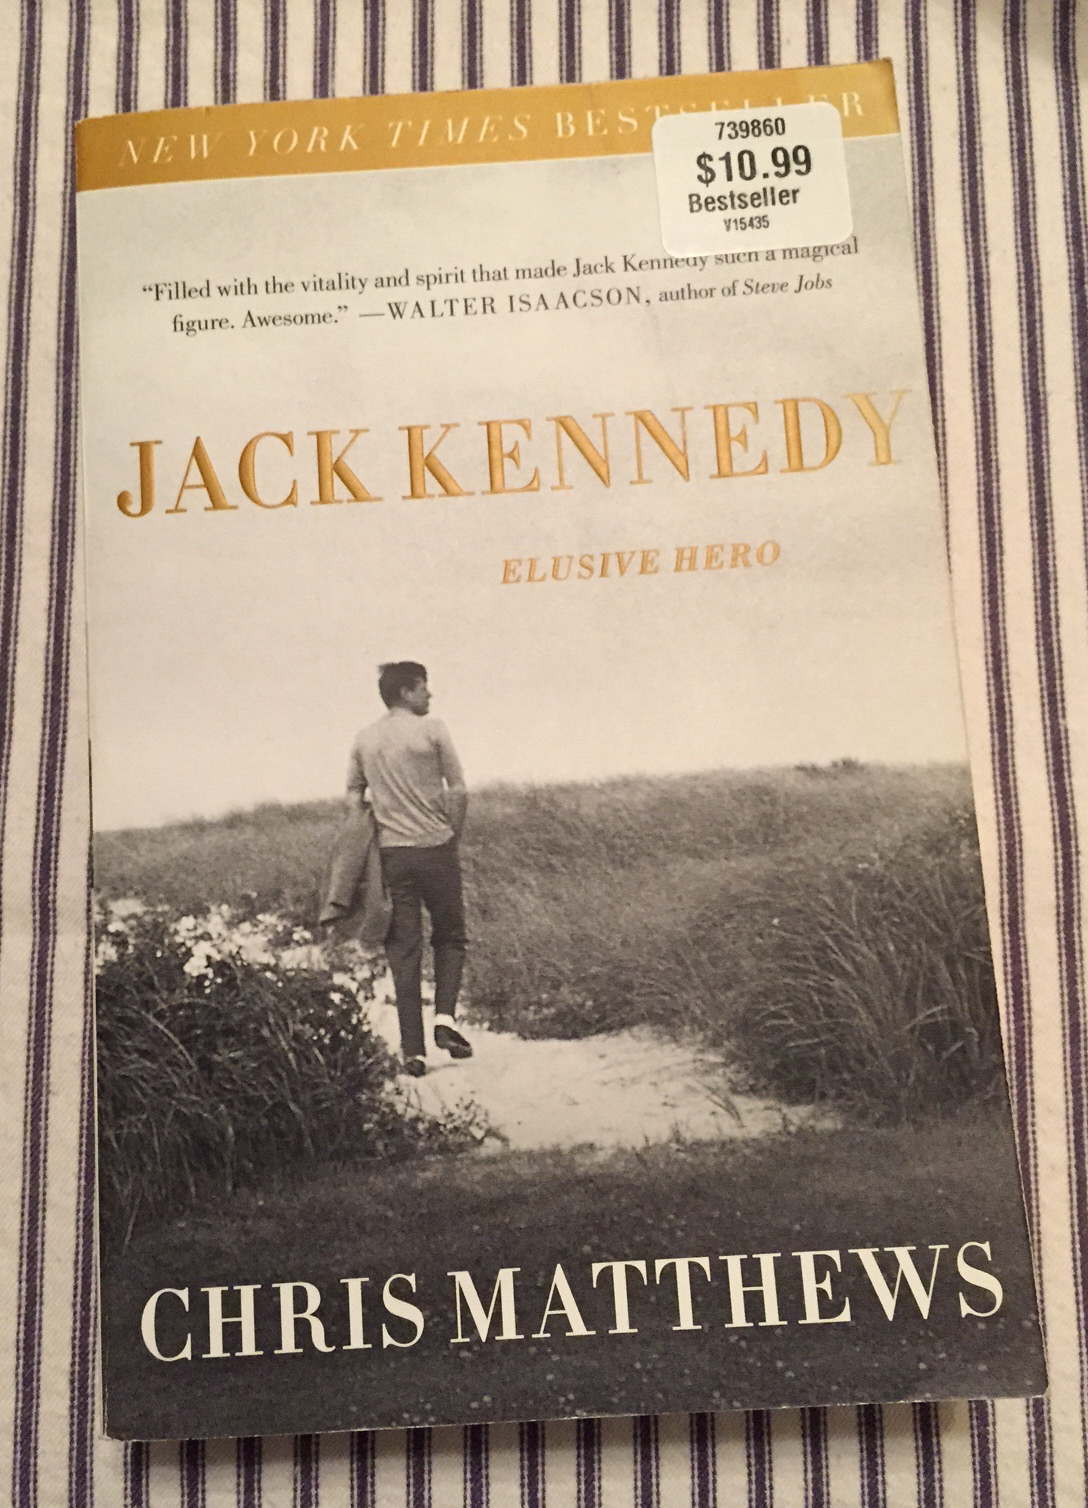 Primary image for SC book Jack Kennedy Elusive Hero by Chris Matthews JFK biography